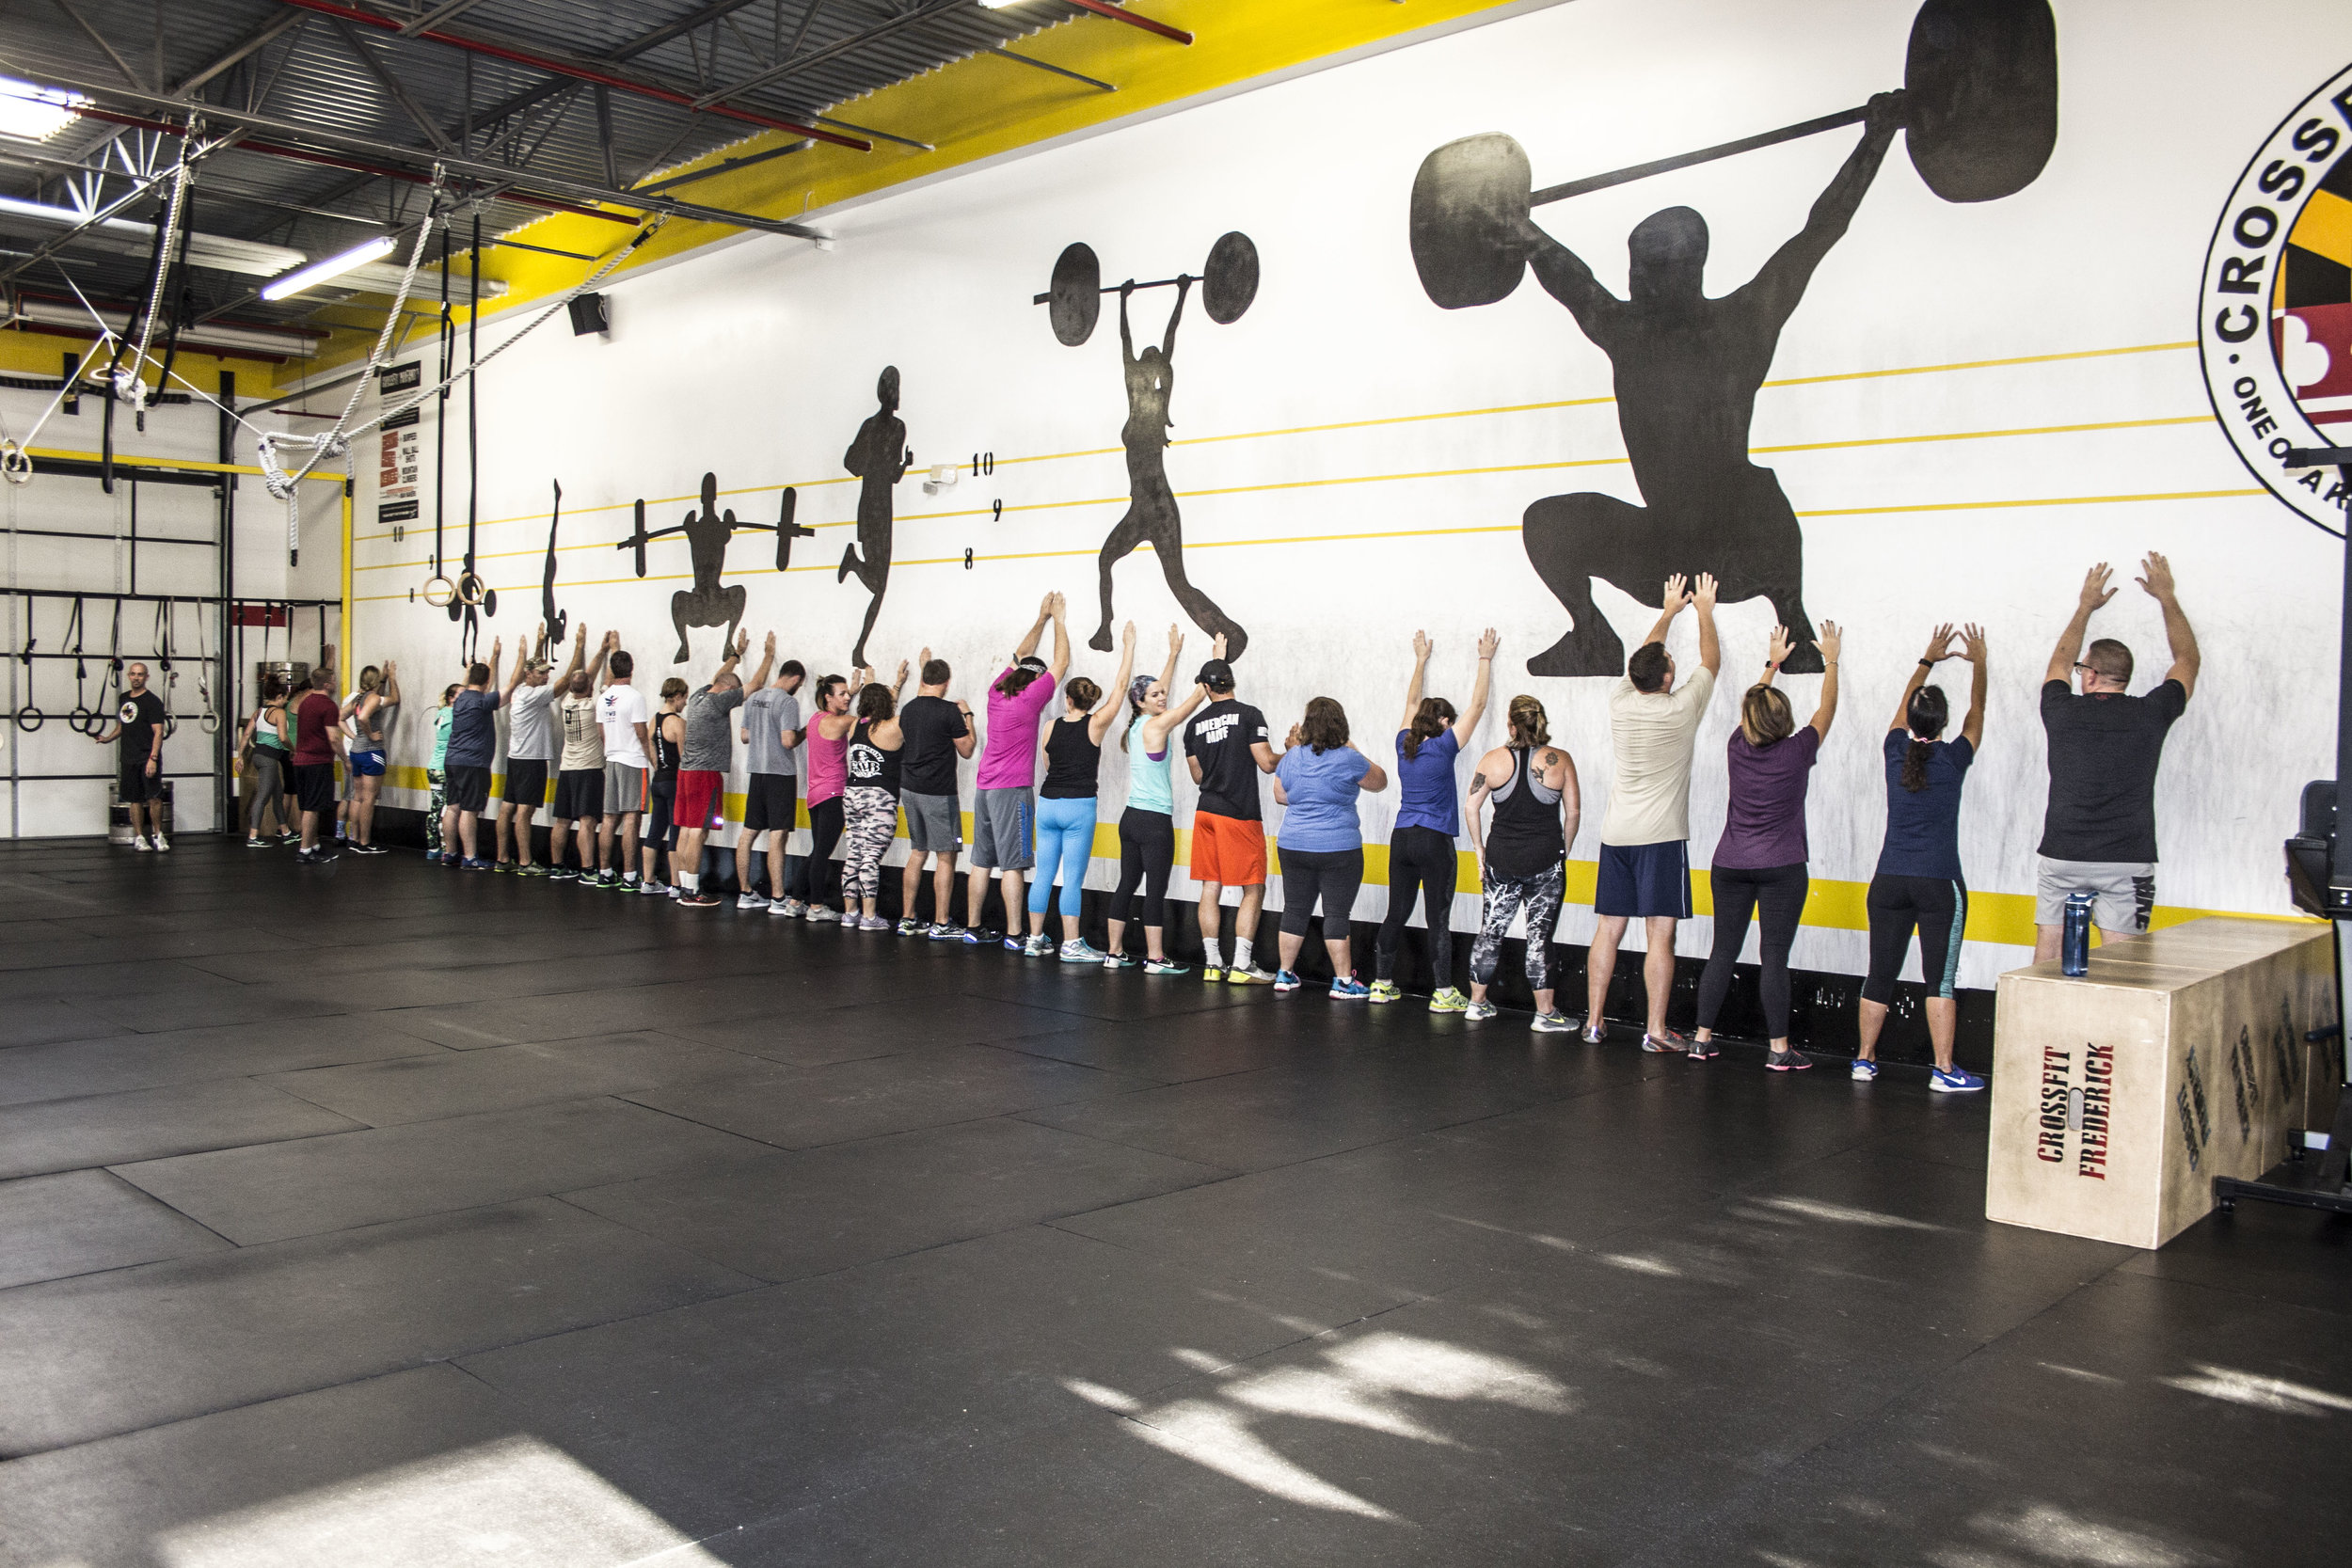 How many Athletes can fit on the wall?